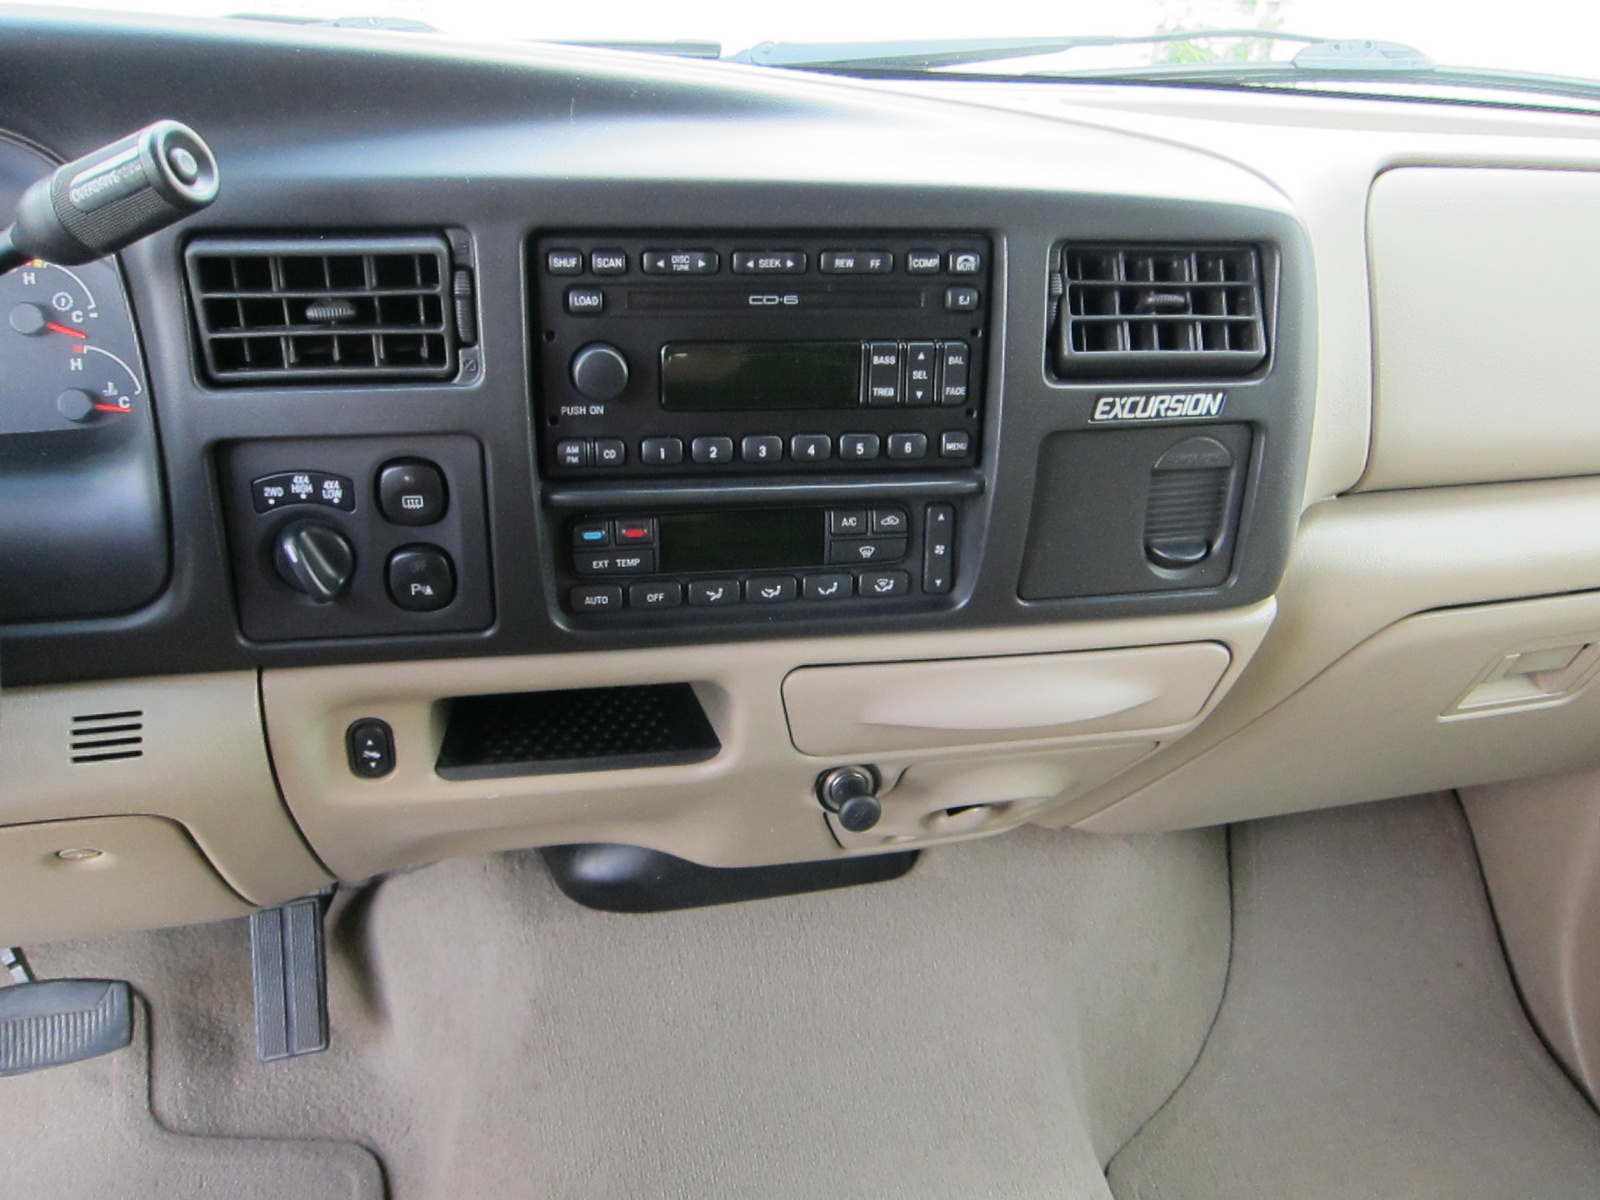 2005 Ford Excursion Interior Hd Photo